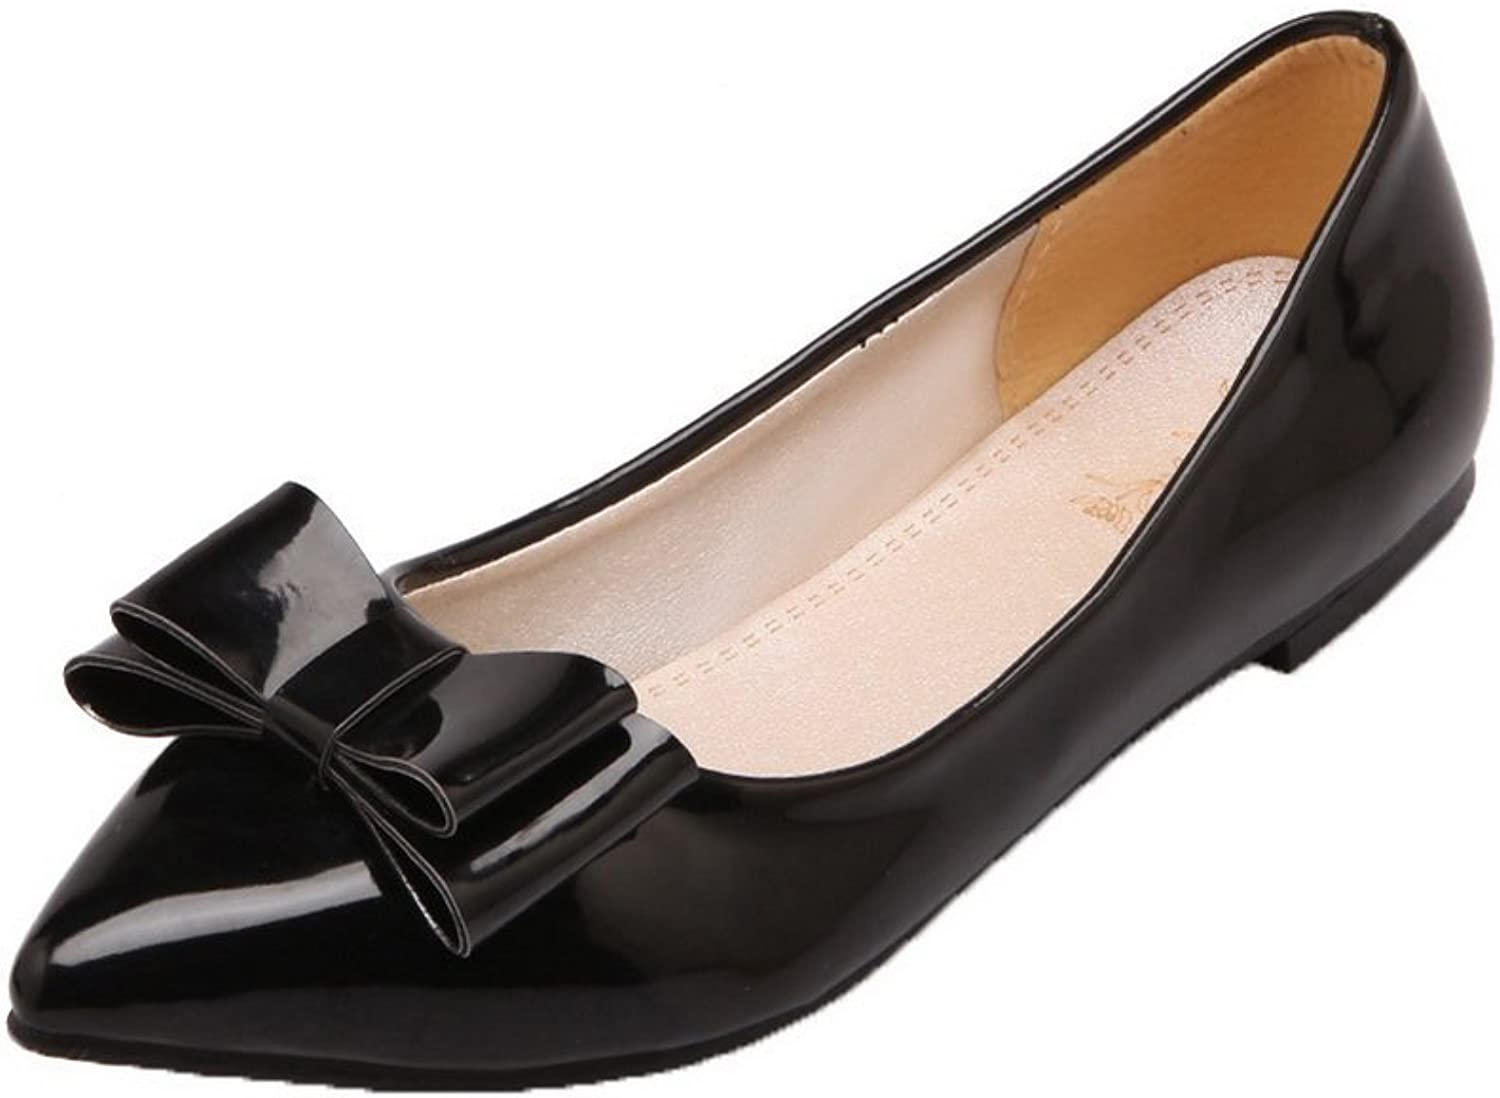 AllhqFashion Women's Patent Leather Low-Heels Closed-Toe Pull-On Pumps-shoes